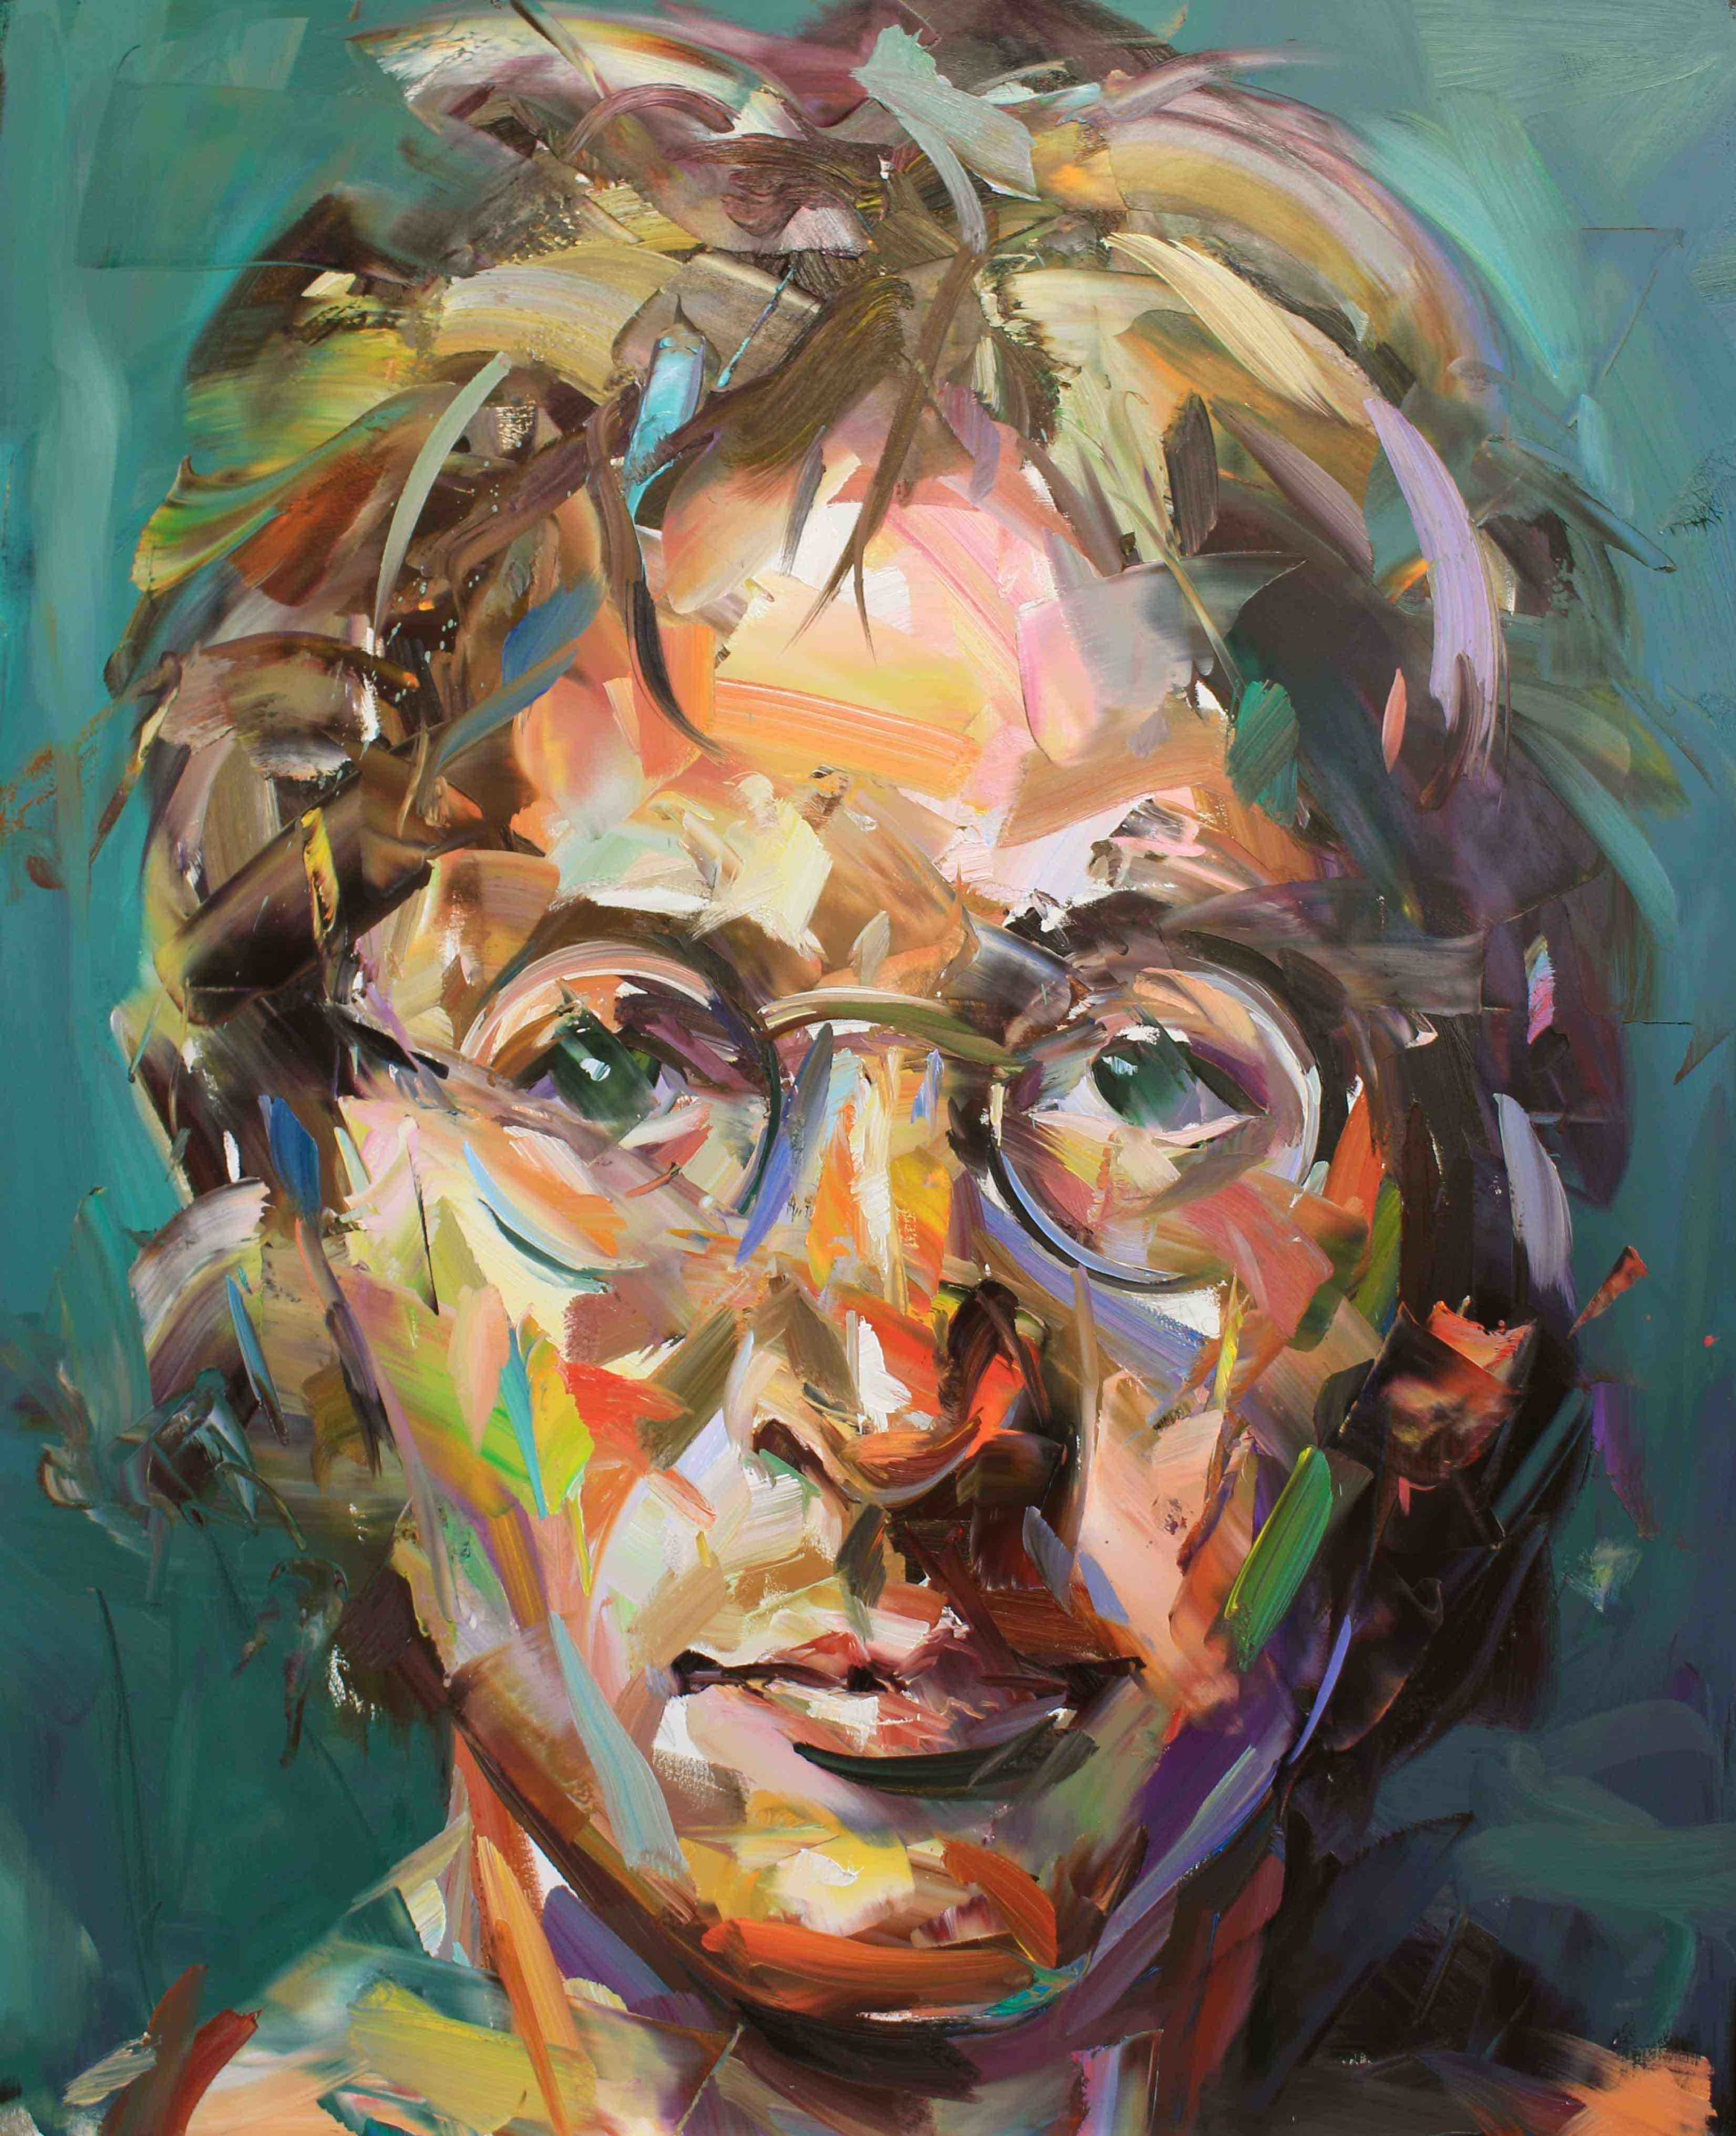 "<span class=""link fancybox-details-link""><a href=""/artists/188-paul-wright/works/2931-paul-wright-john-lennon/"">View Detail Page</a></span><div class=""artist""><strong>Paul Wright</strong></div> <div class=""title""><em>John Lennon </em></div> <div class=""medium"">Oil on Linen </div> <div class=""dimensions"">112 x 92 cm </div><div class=""copyright_line"">Copyright The Artist</div>"